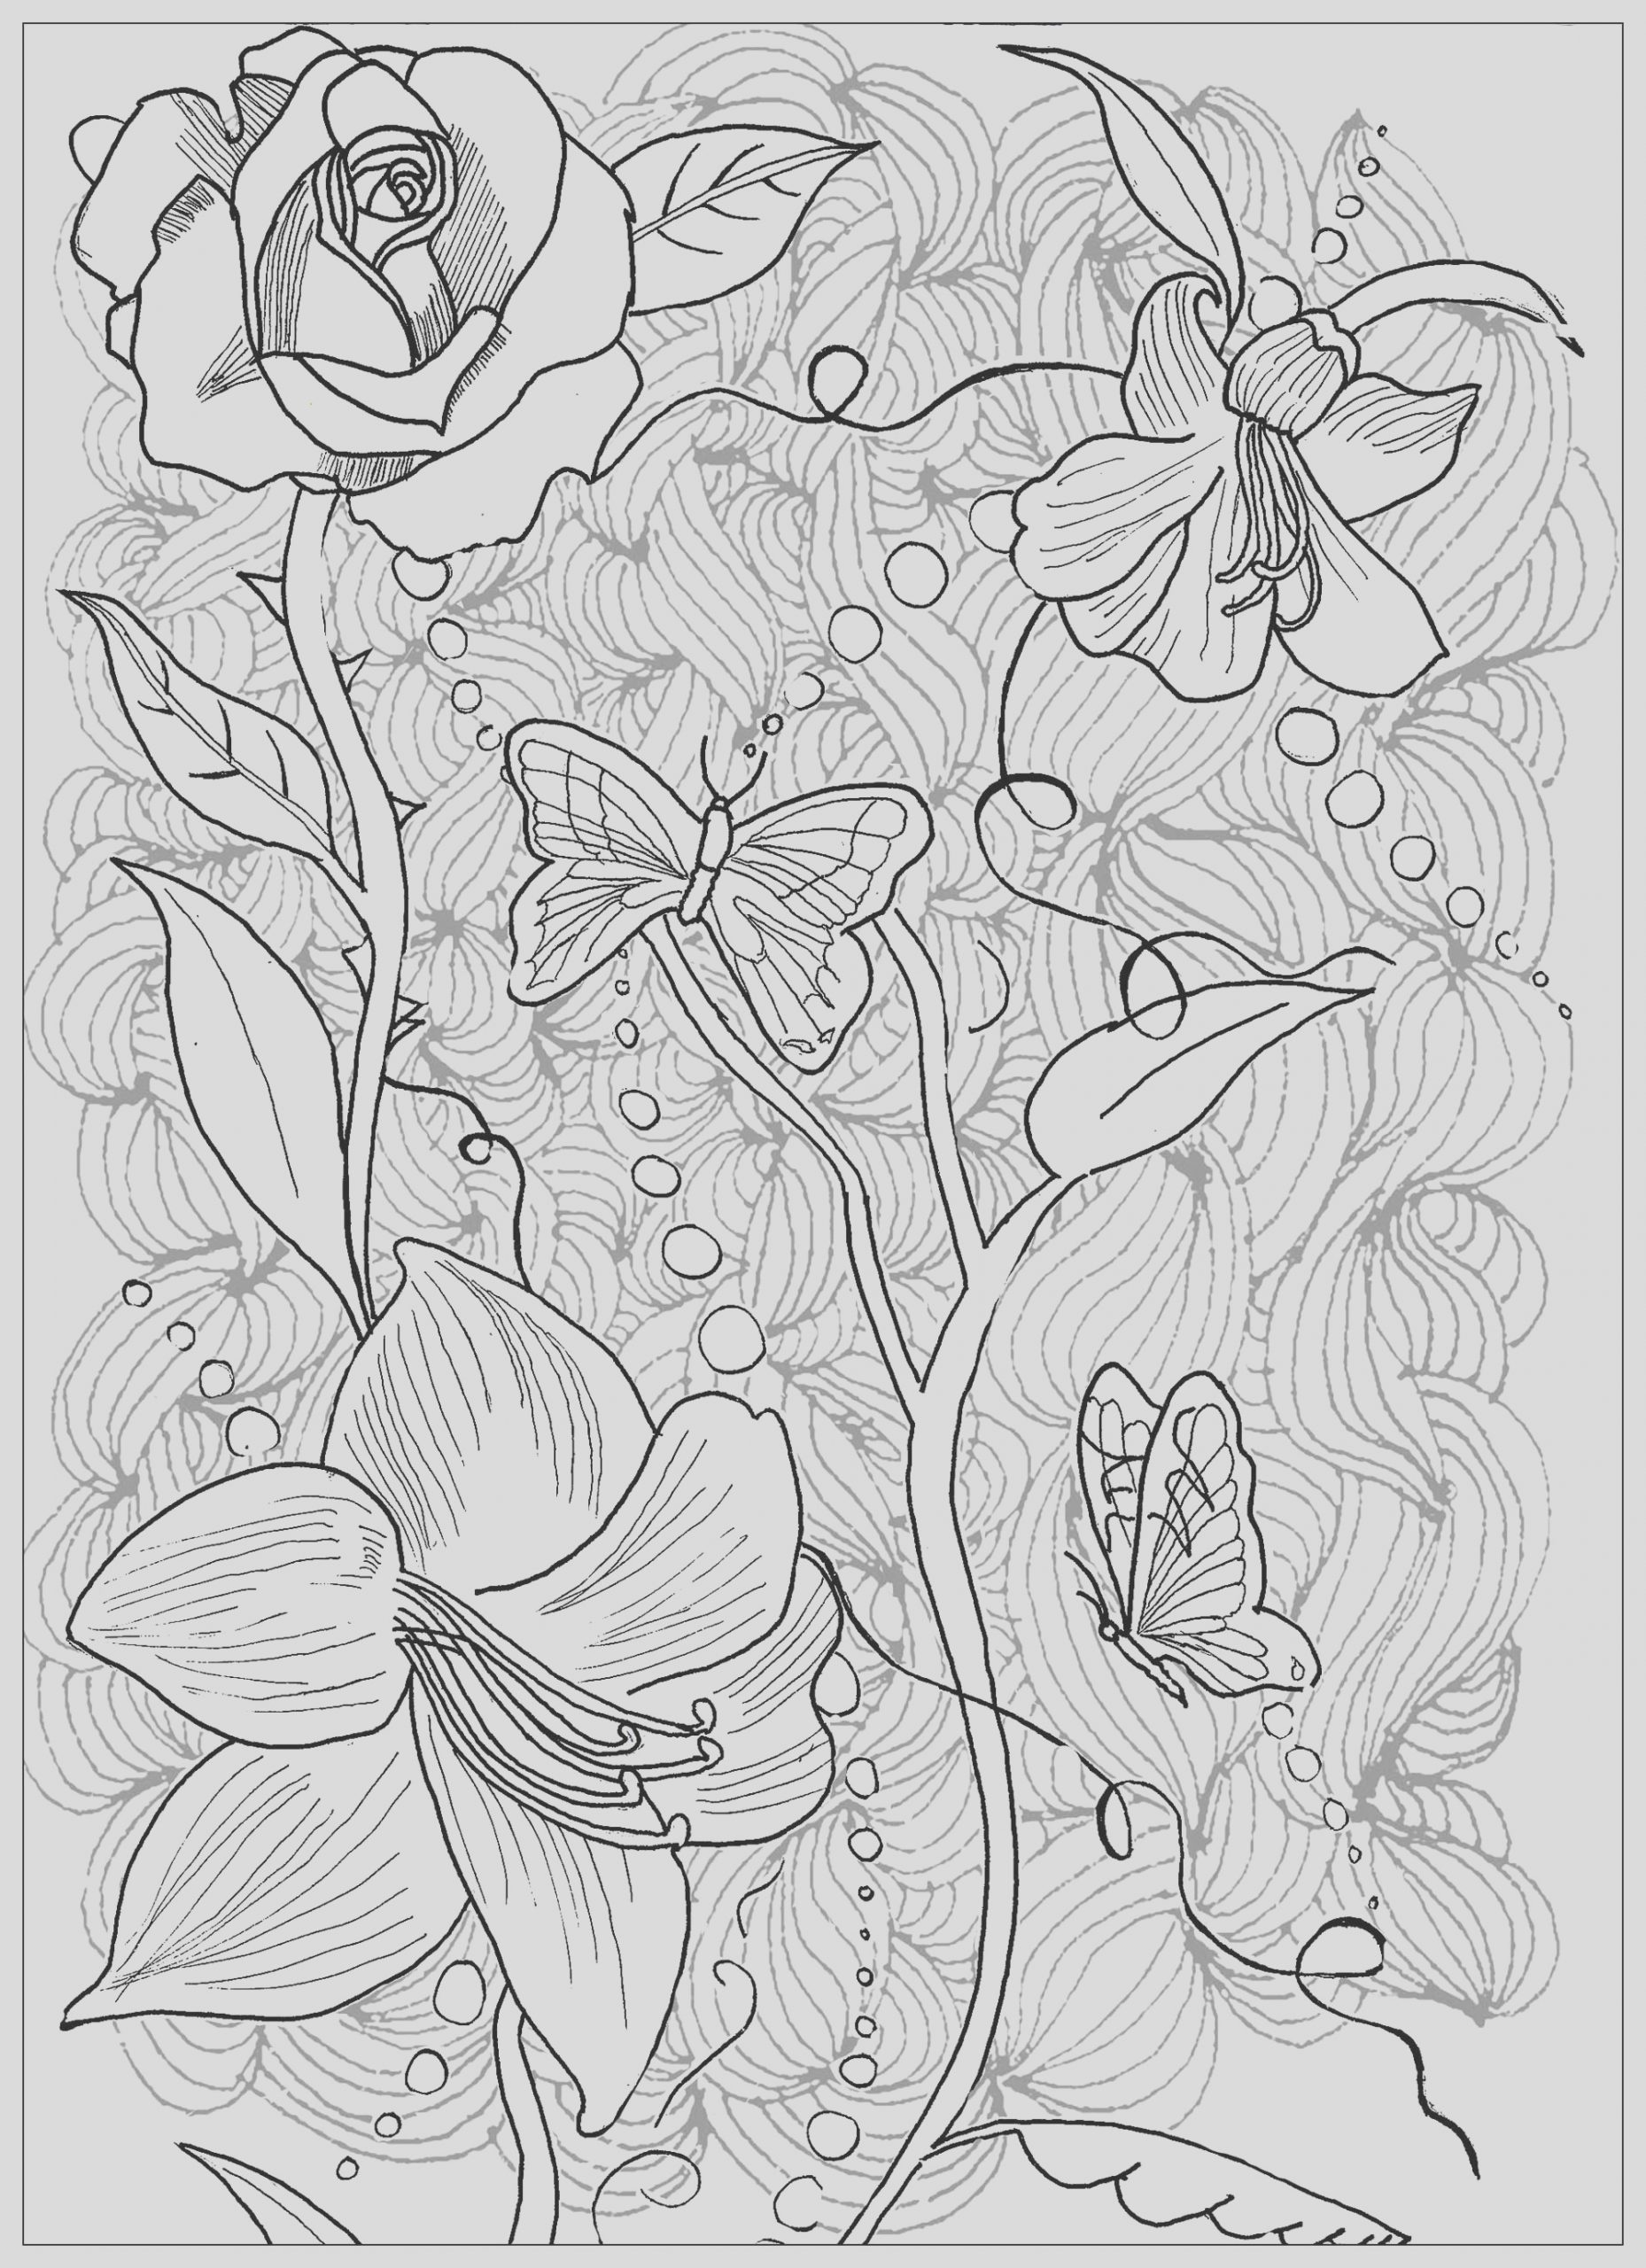 image=tatoo Coloring Page Tattoo Flowers Butterfly 1